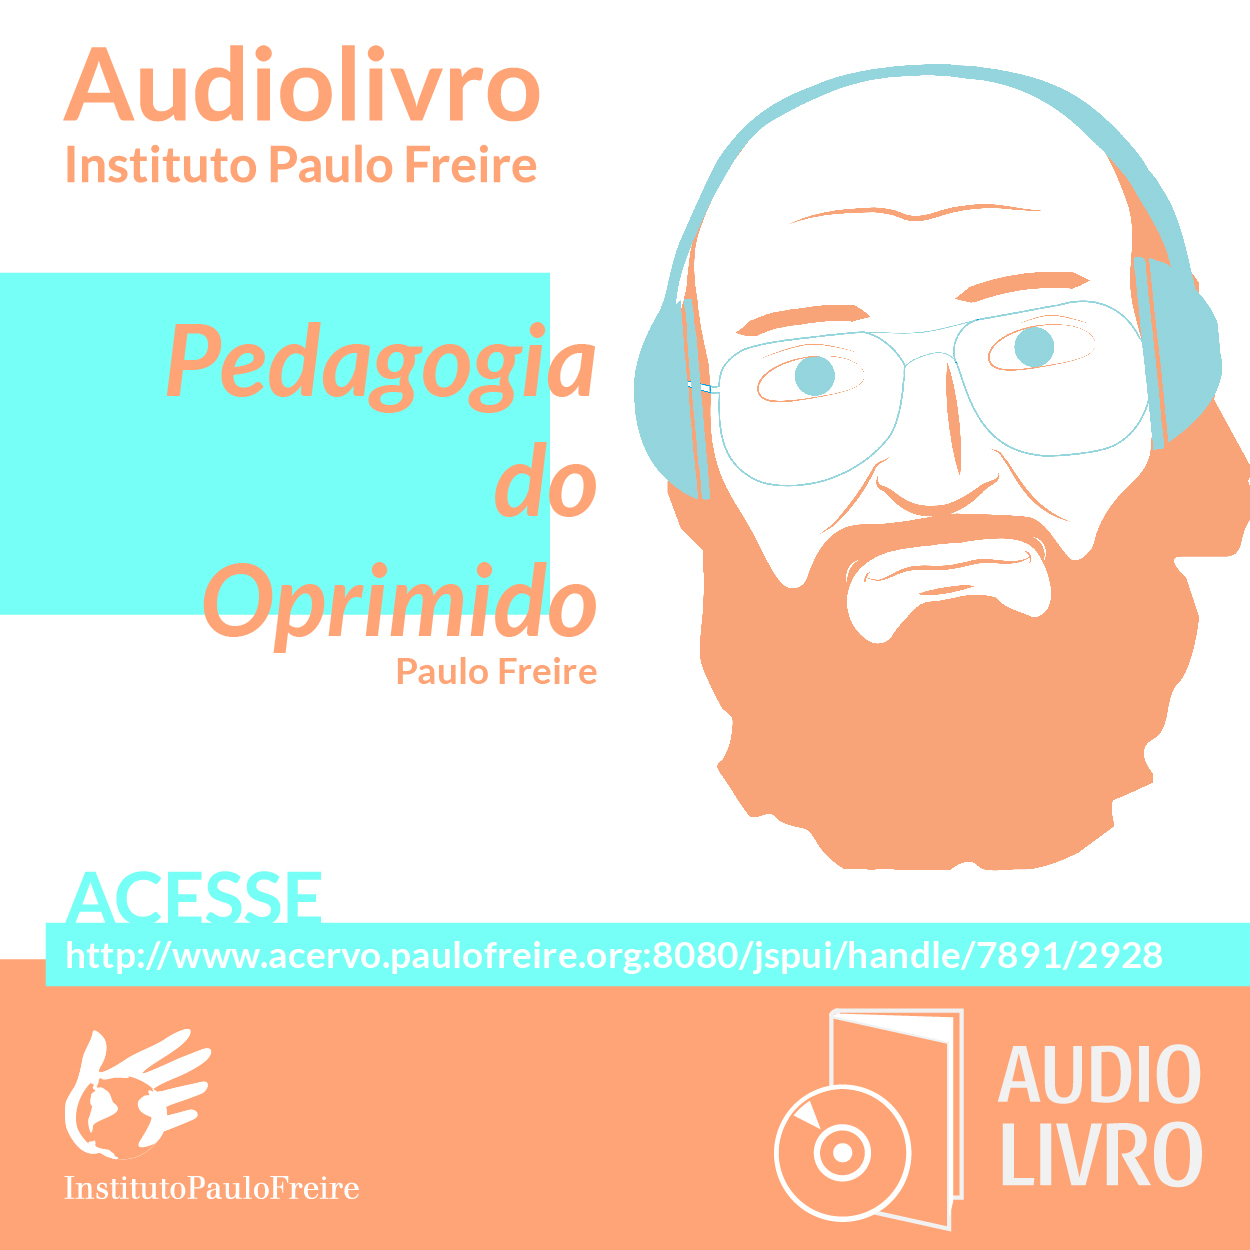 AUDIOLIVRO P.do Oprimido face 01